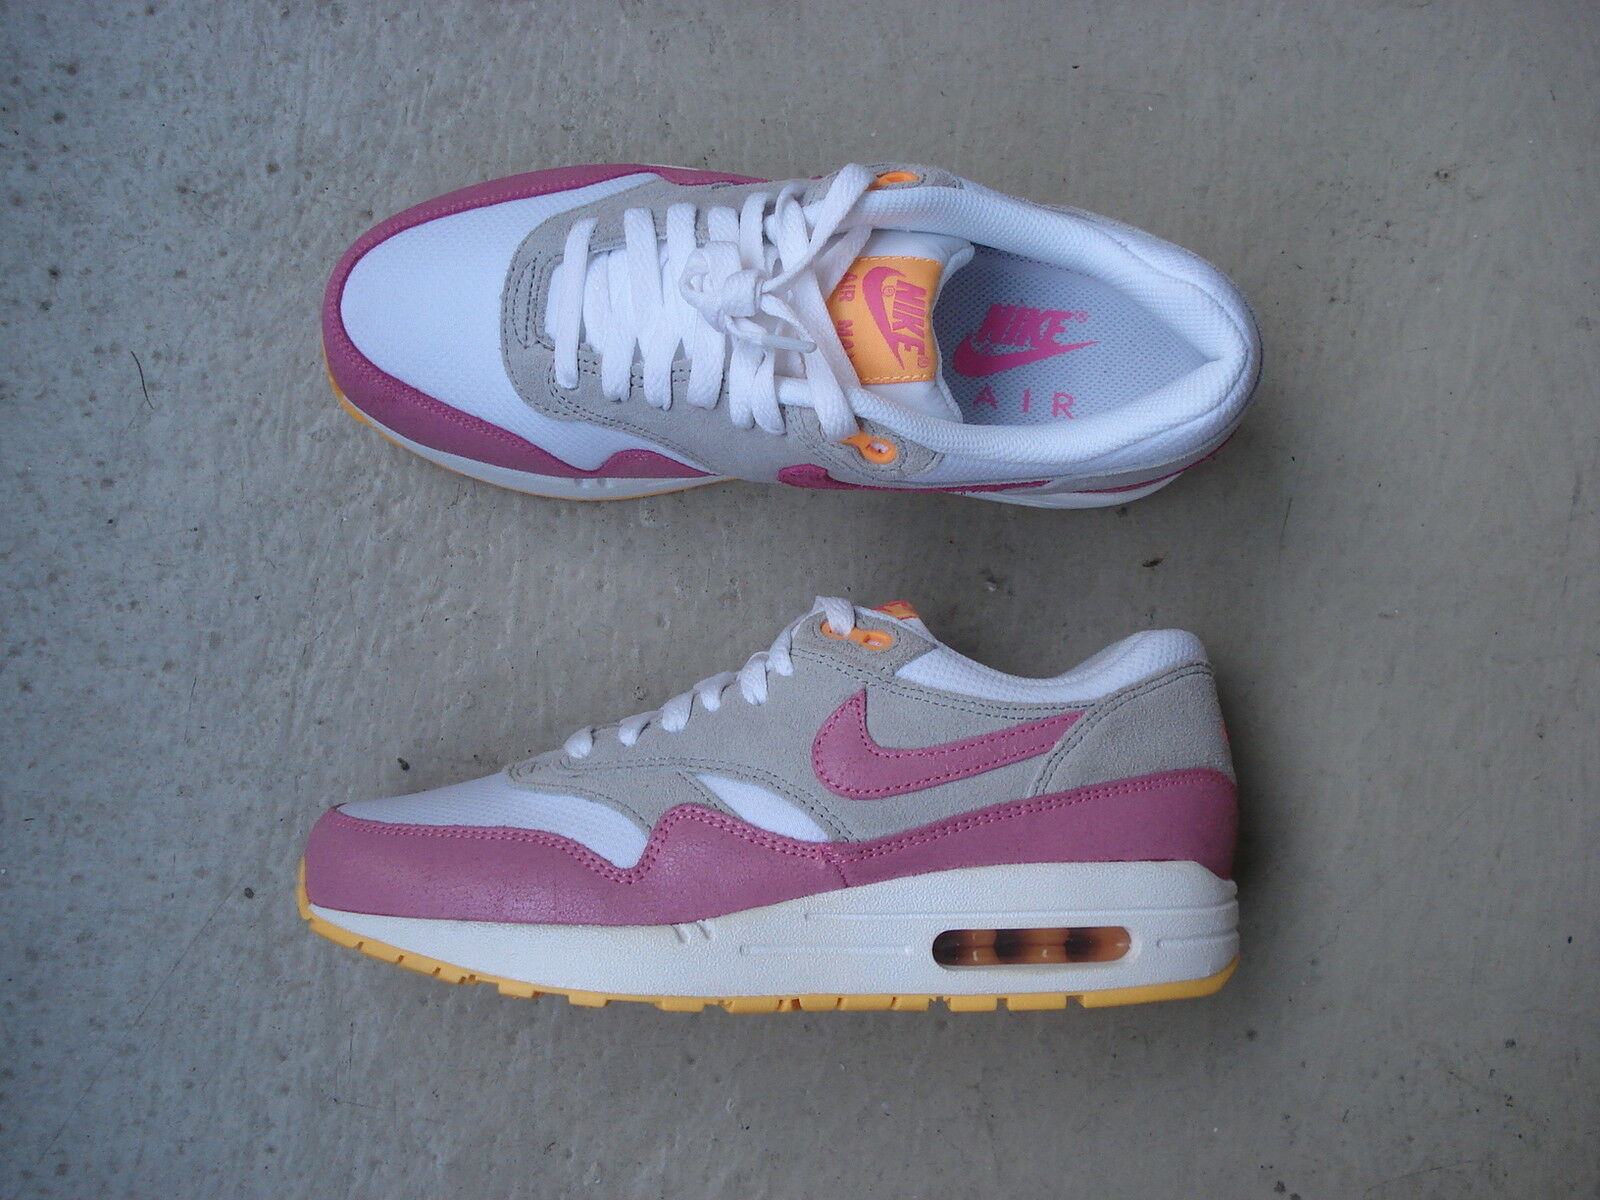 Casual salvaje Wmns Nike Air Max 1 essential 39 White/PNK glw-WLF Gry-atmc MNG